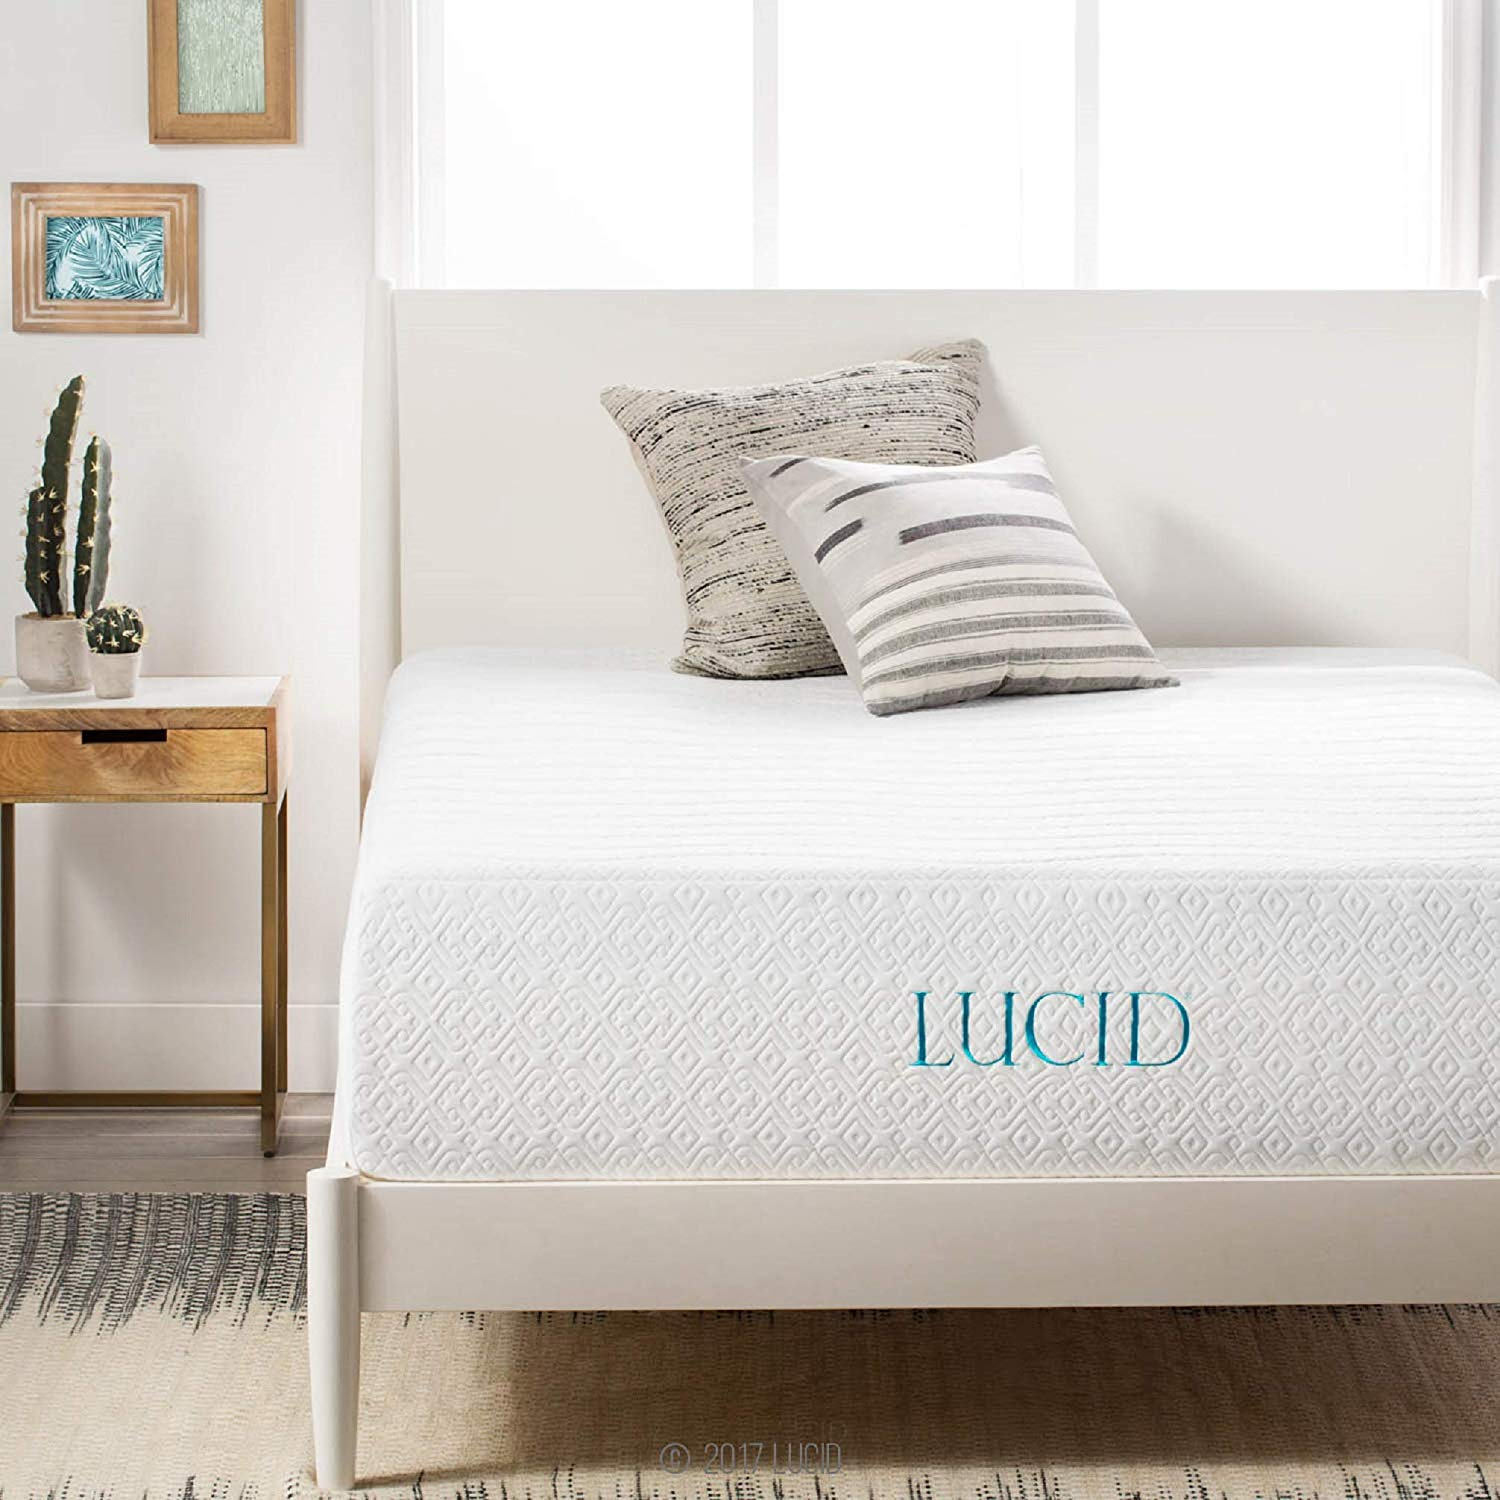 14 Inch Medium-Plush Memory Foam Lucid Mattress Reviews by www.snoremagazine.com